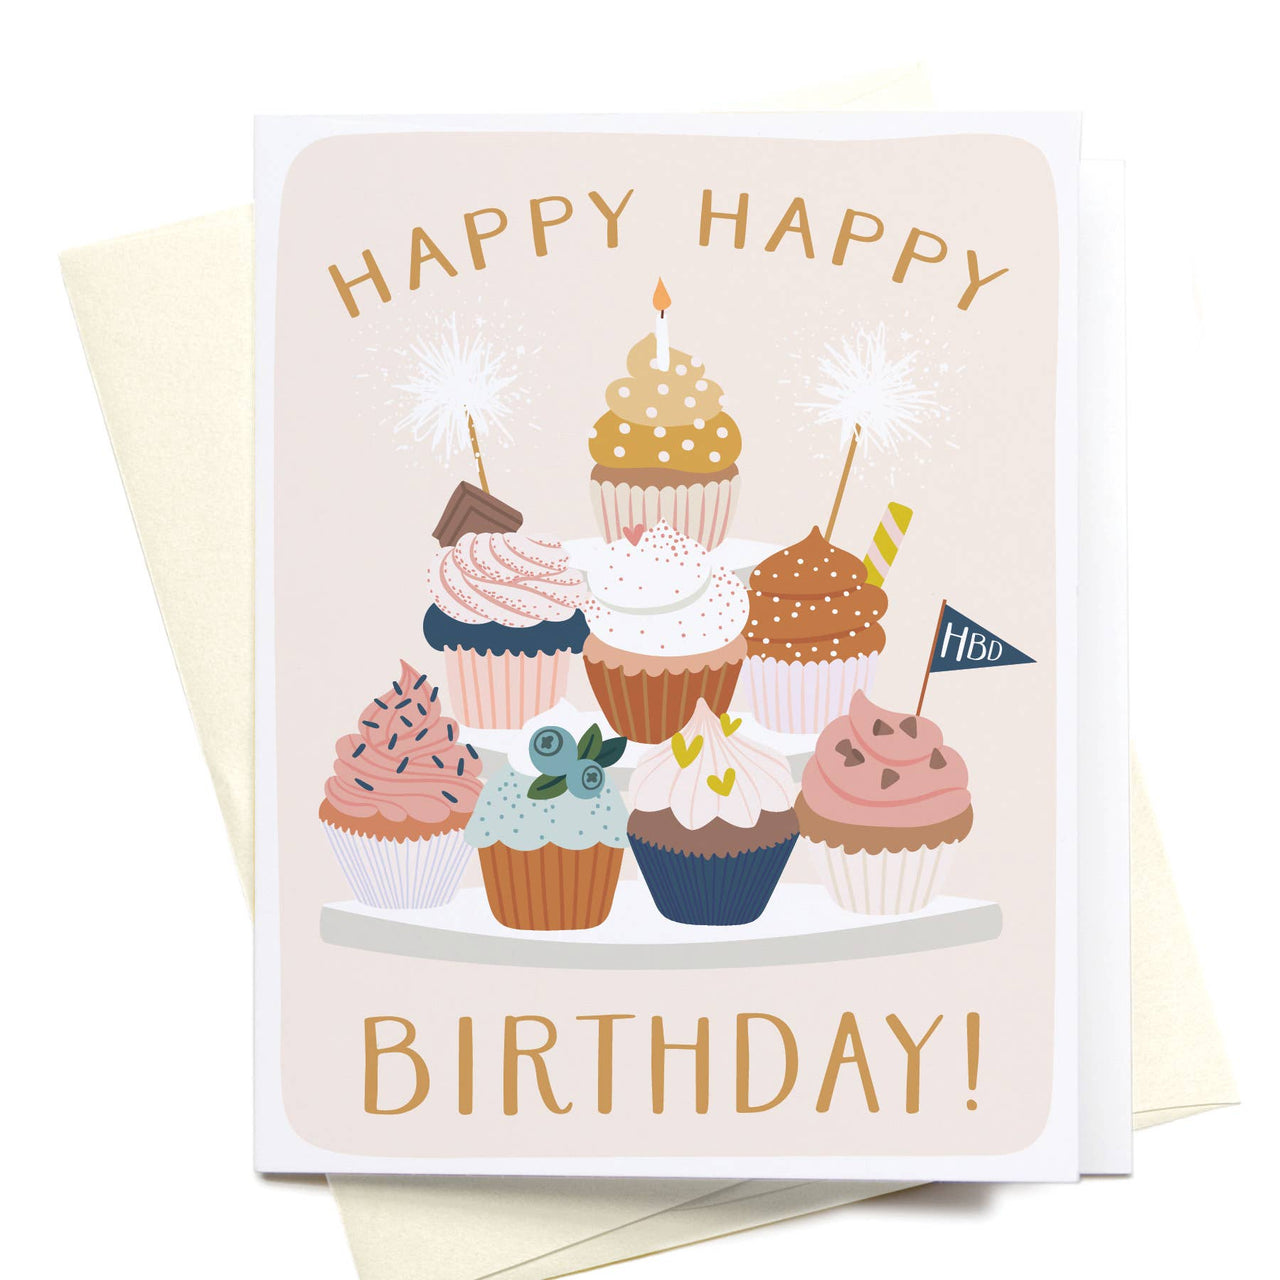 Happy Happy Birthday! Cupcake Stand Greeting Card